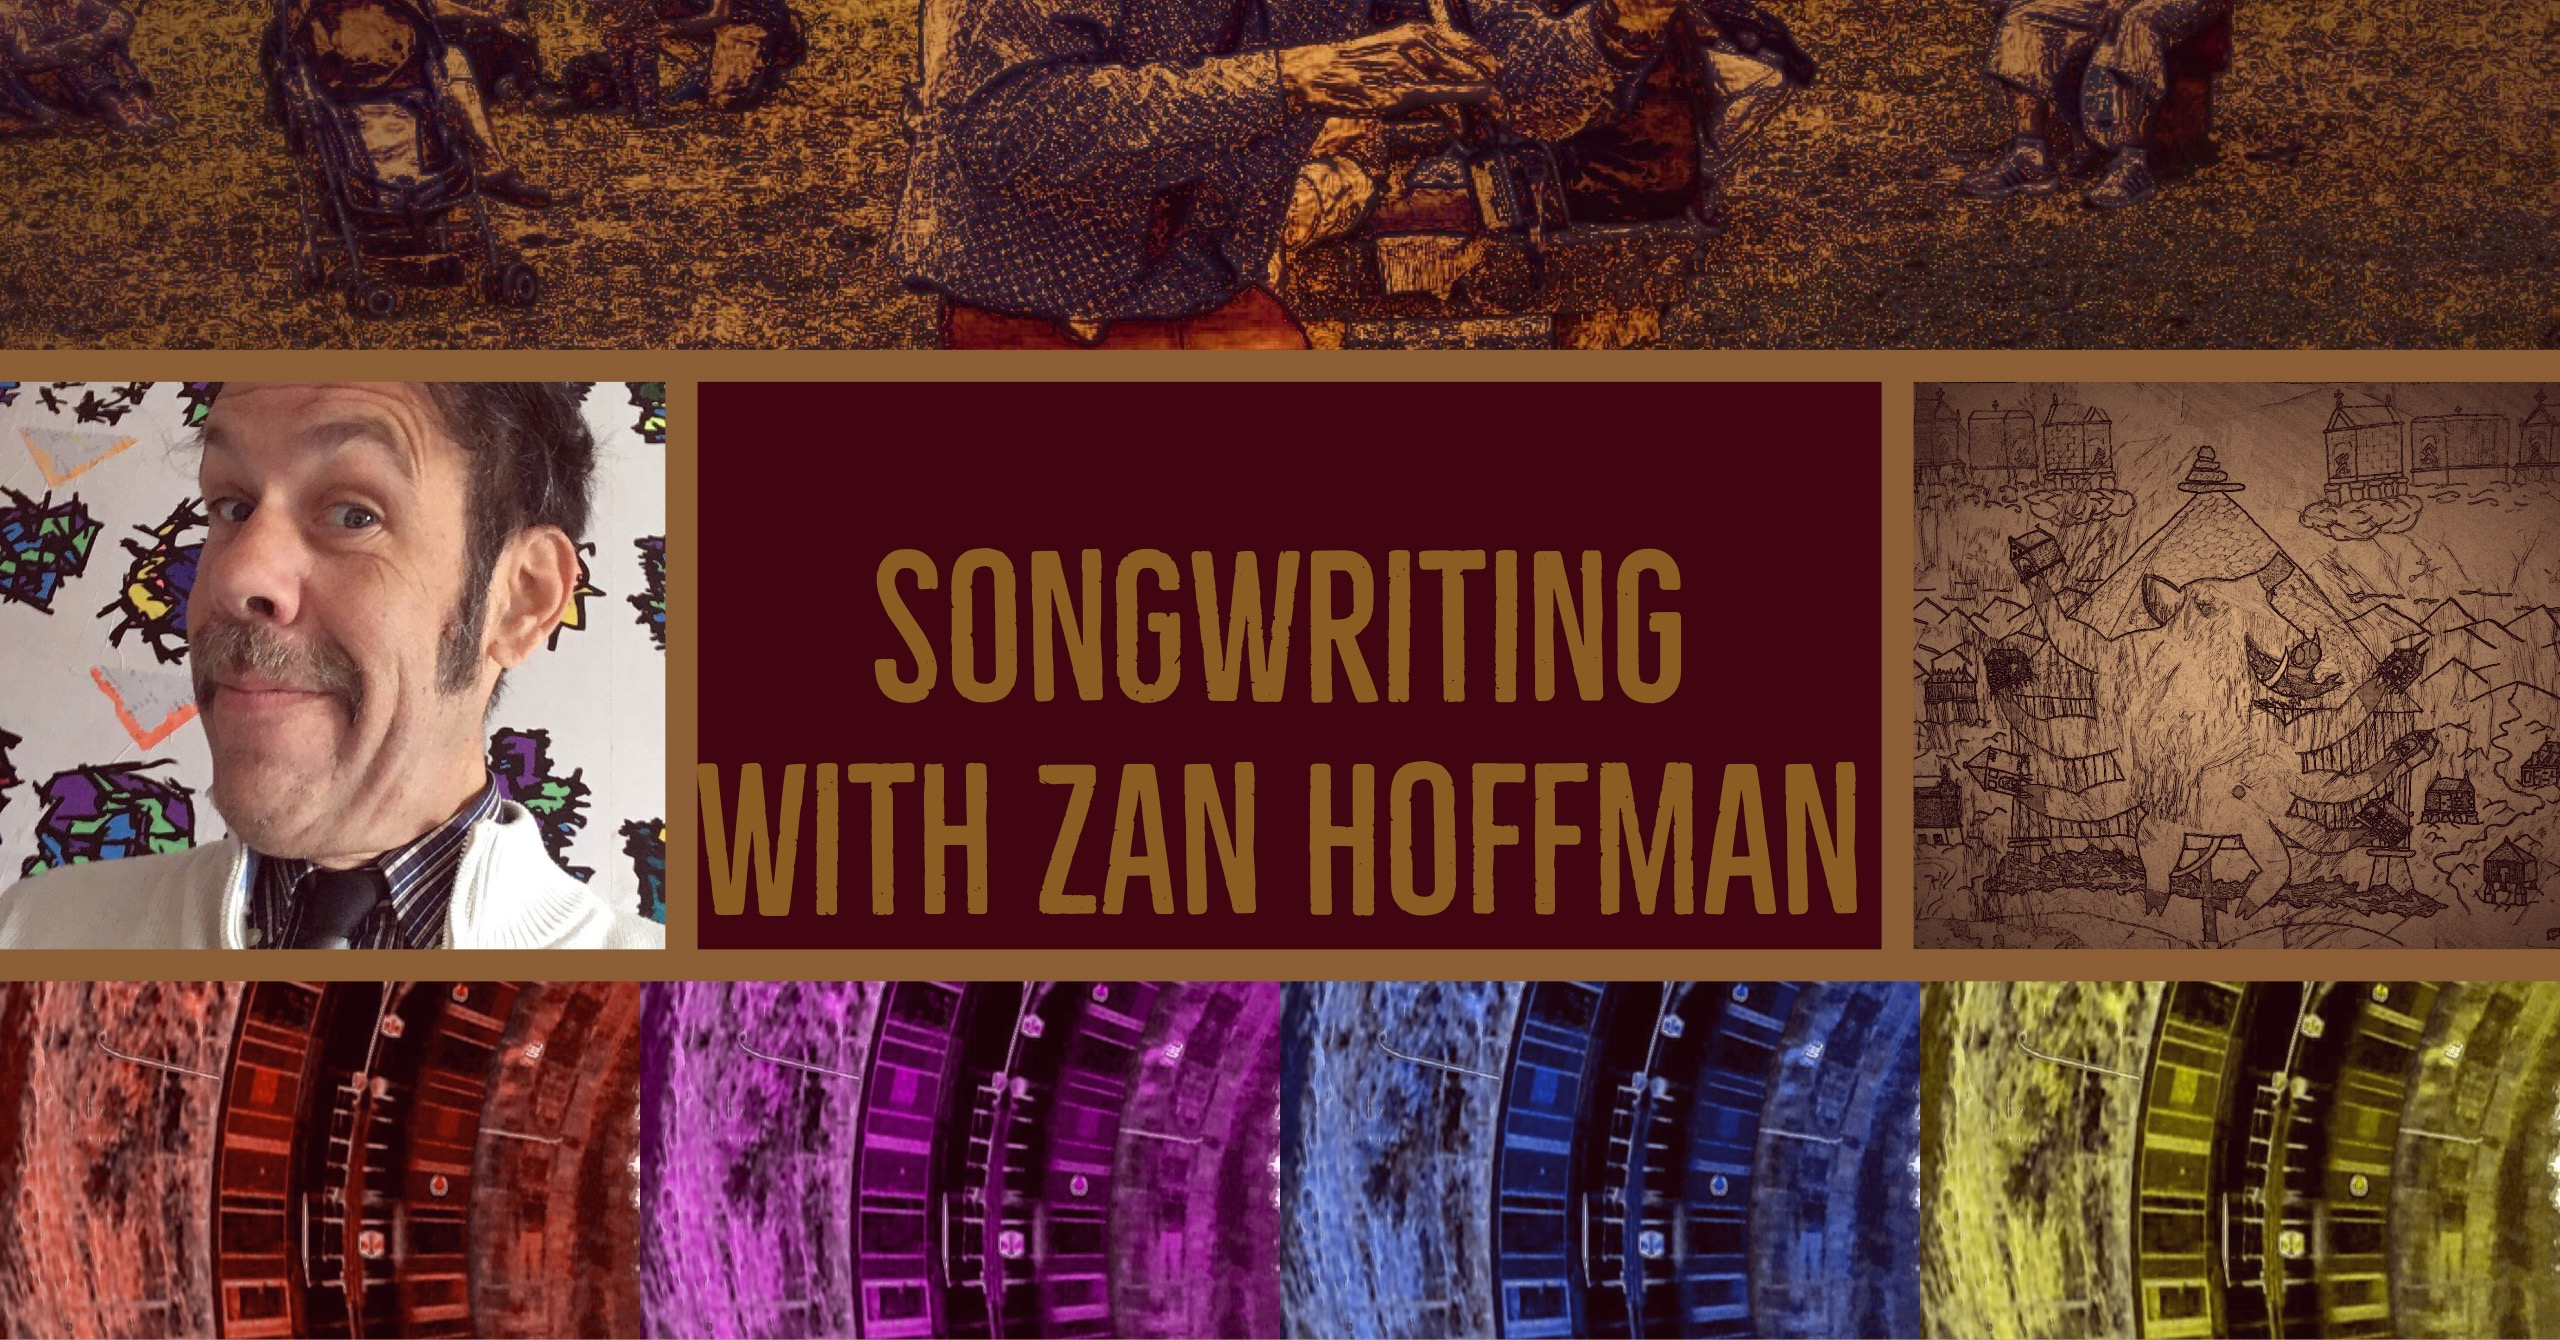 Sound Cycle: Zan Hoffman Songwriting Seminar